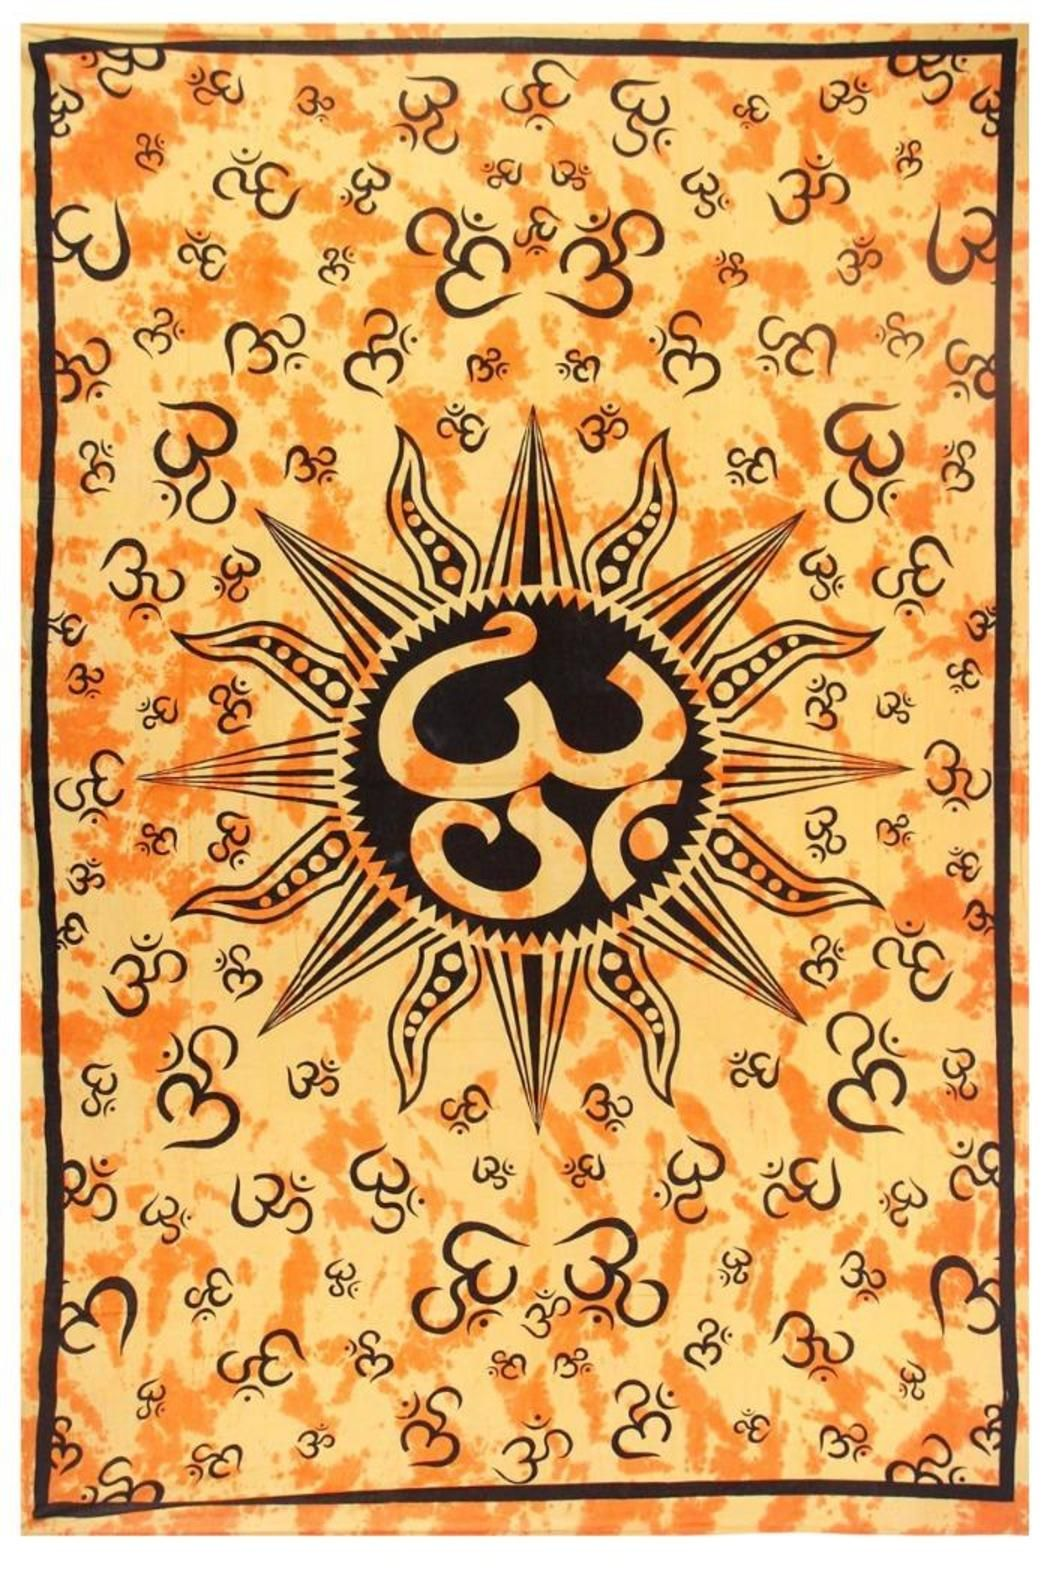 A Little Bit Hippy Om Sun Tapestry | Pinterest | Tie dye tapestry ...